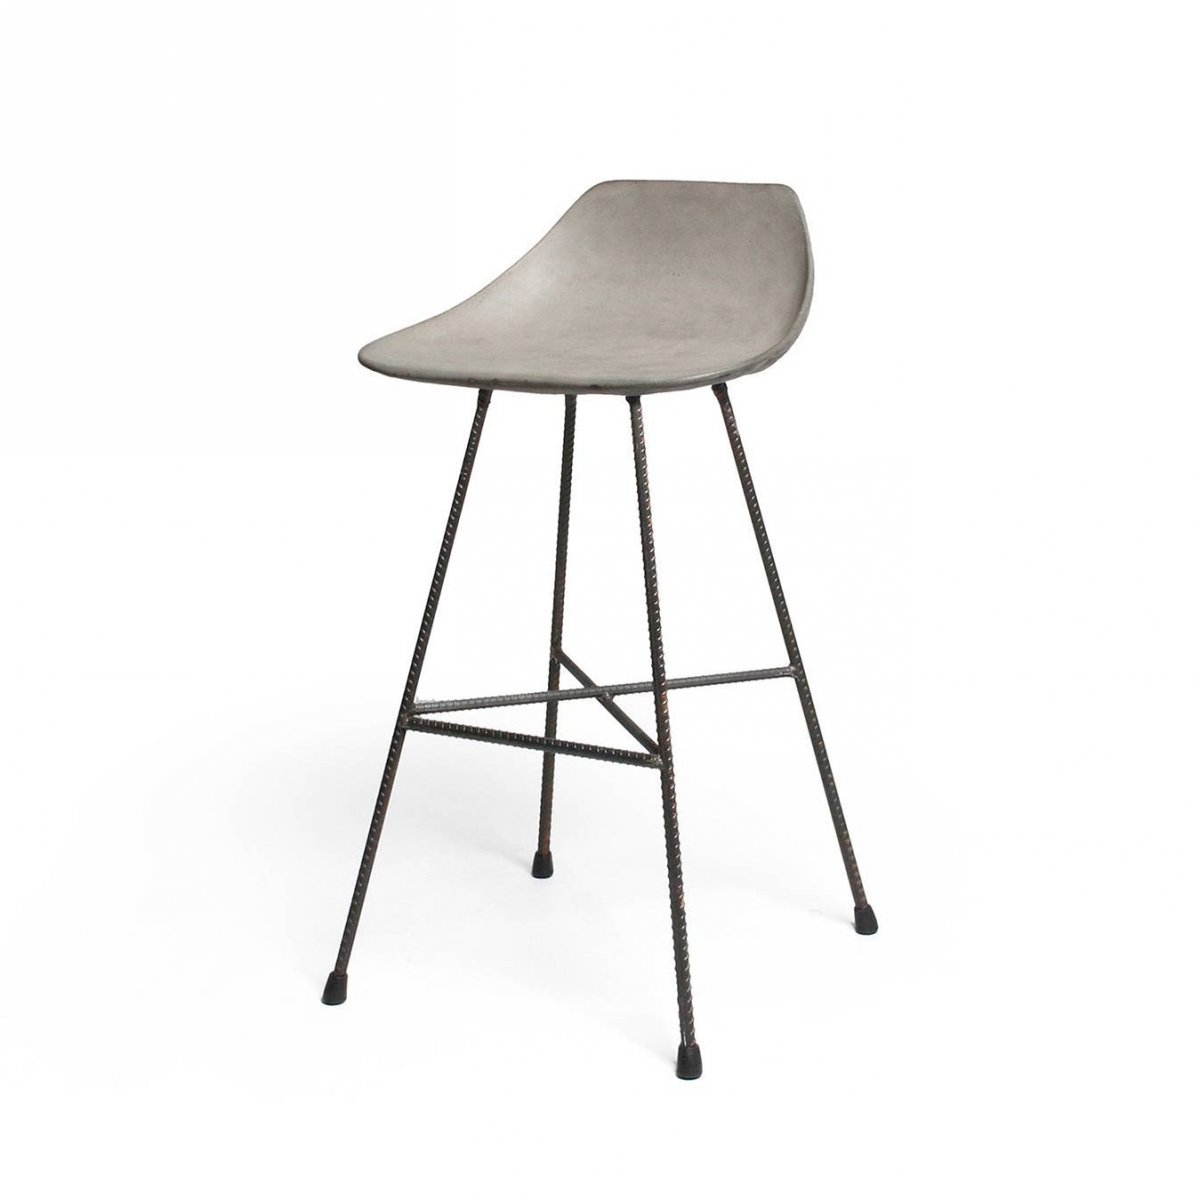 bar chairs concrete nat's fishing chair not working hauteville counter by henri lavallard boget for lyon